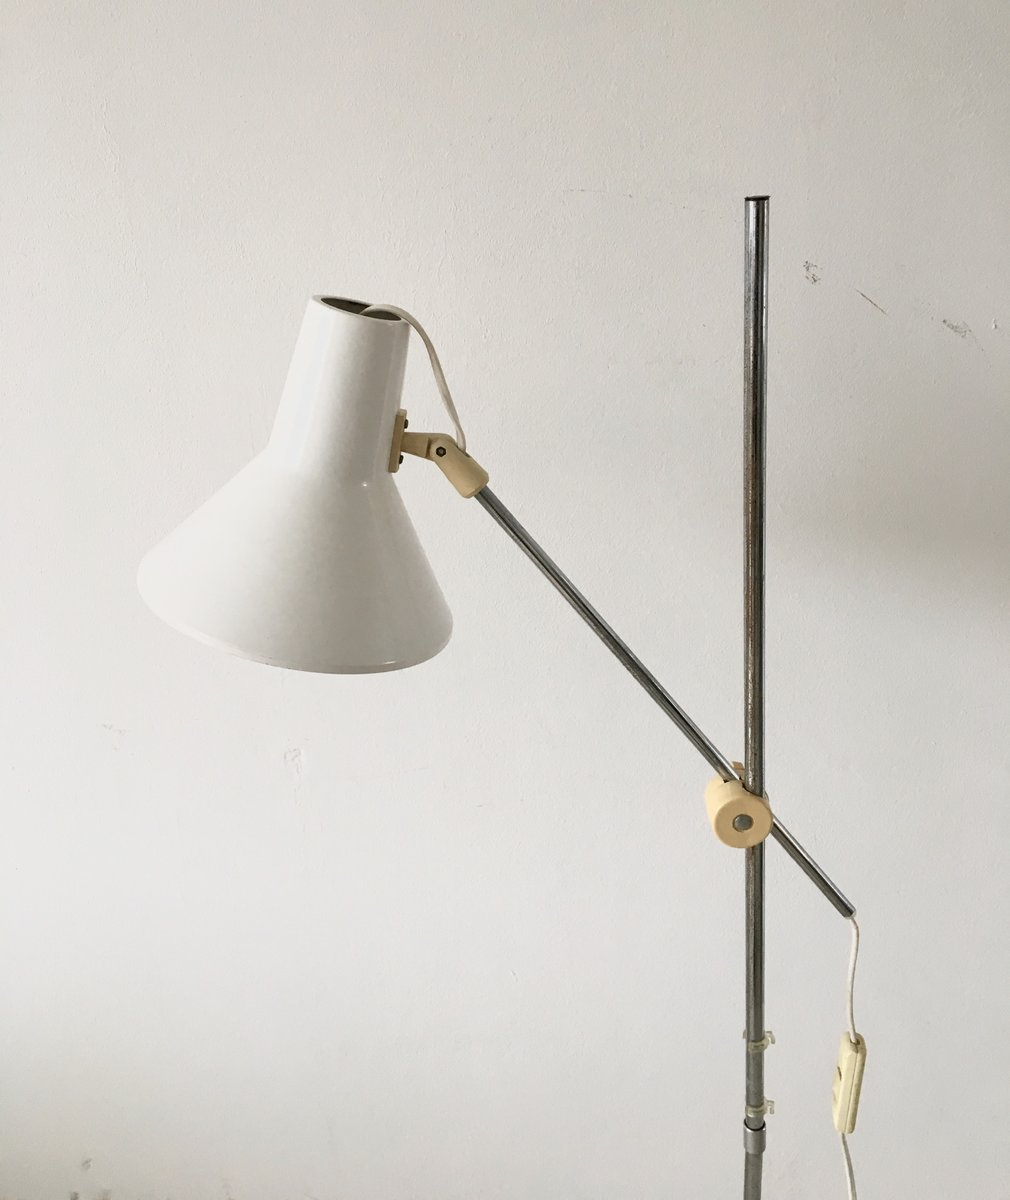 Vintage industrial floor lamp from ikea for sale at pamono for 4 bulb antique floor lamp